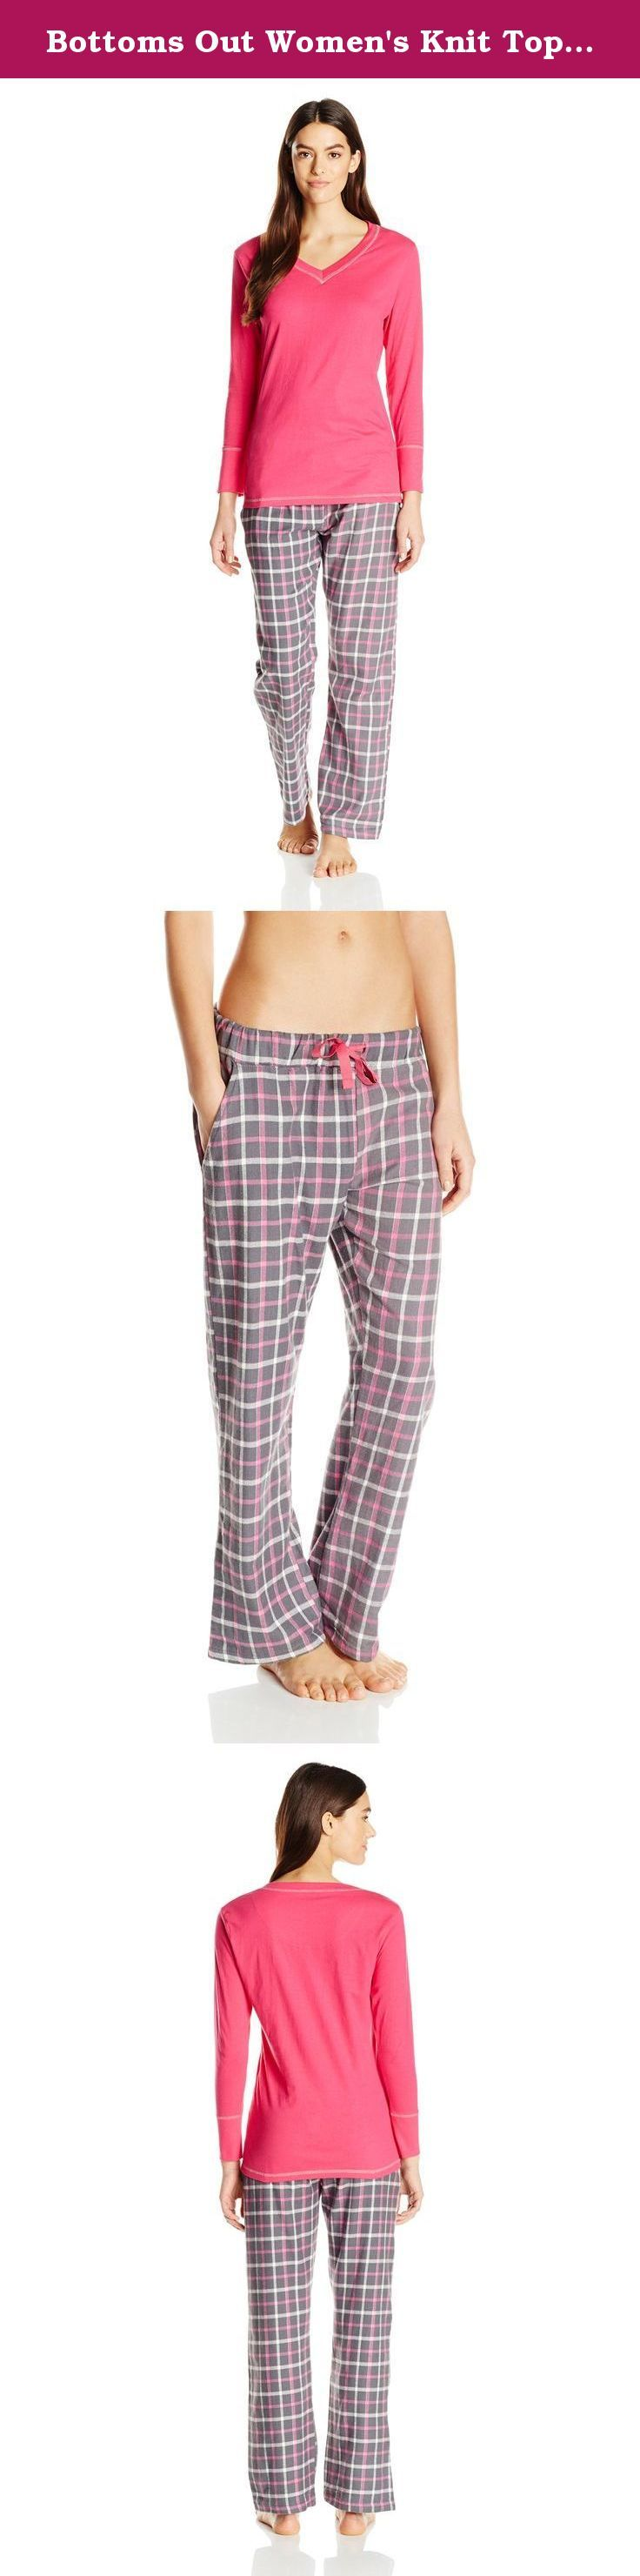 Bottoms Out Women's Knit Top with Flannel Pant Pajama Set, Pink/Grey, Medium. Ladies pajama set with V-neck knit top and plaid flannel pants.